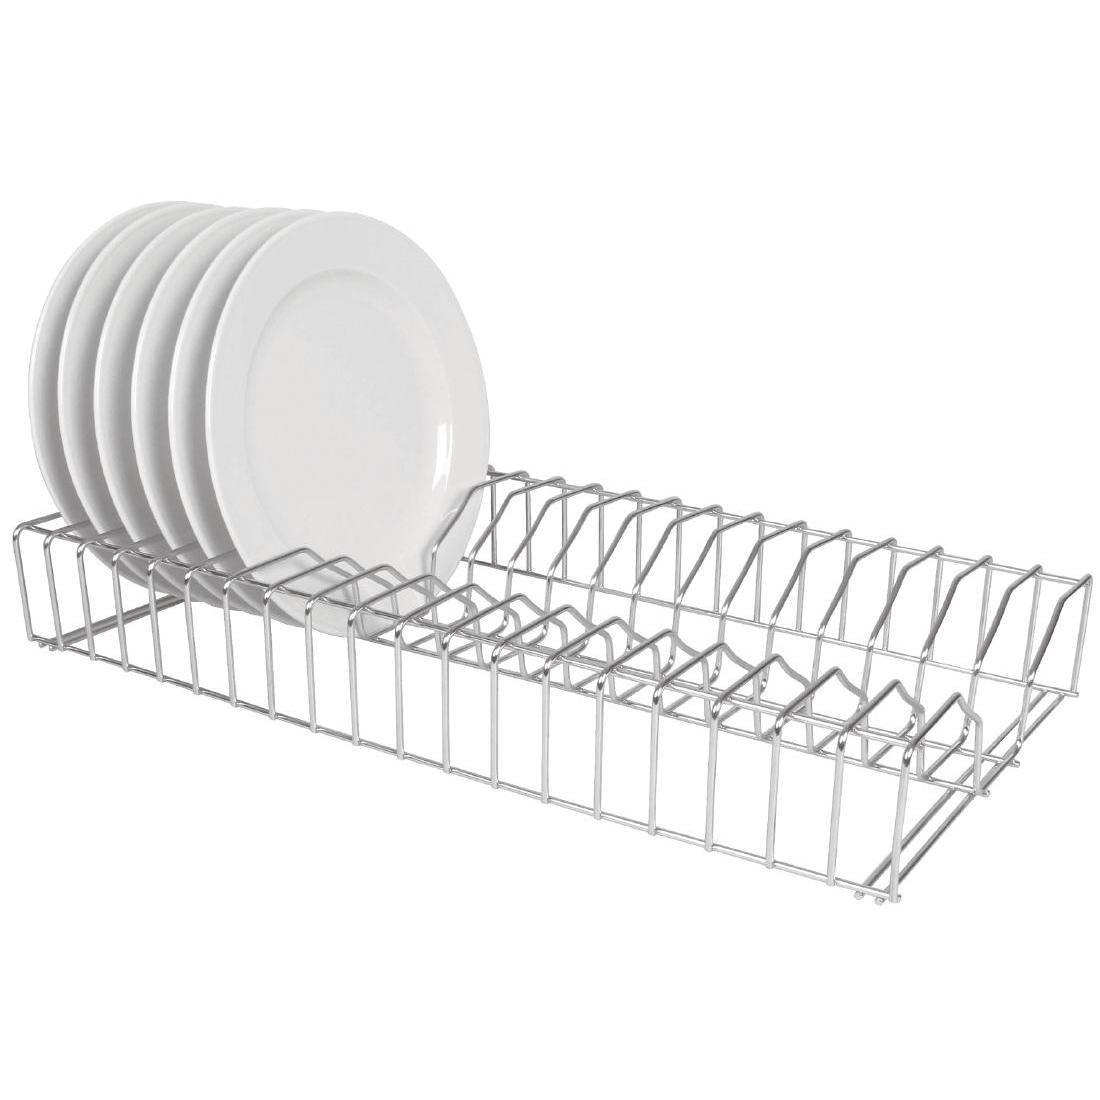 Vogue Stainless Steel Plate Racks - L441